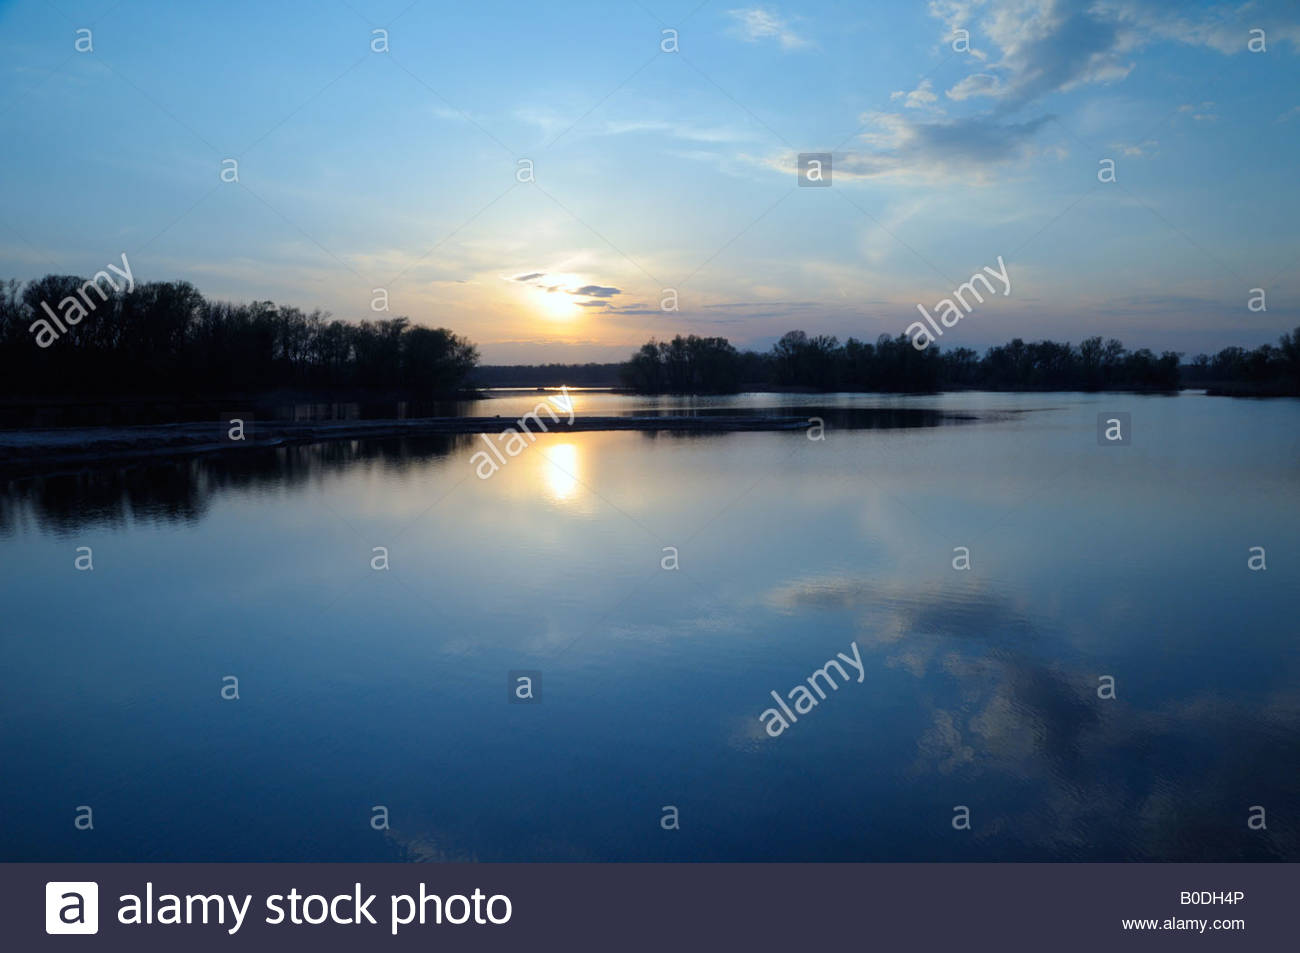 calm sunset on river of Dnieper, Ukraine - Stock Image